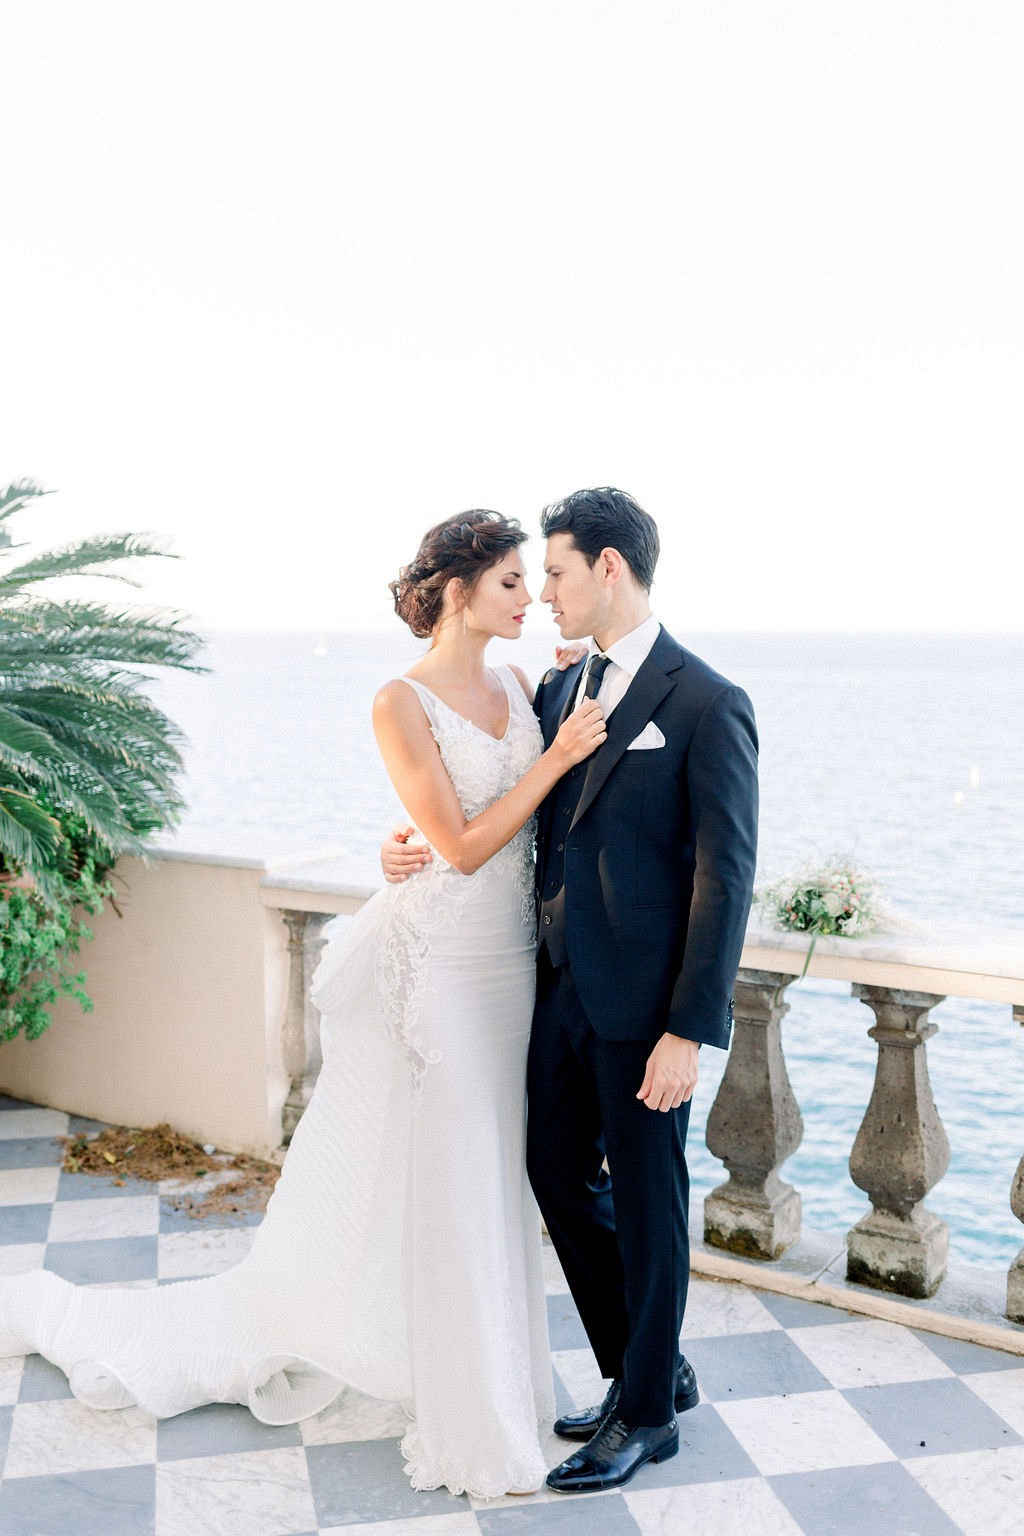 The Amalfi Coast is Definitely The Most Romantic Place to Get Married